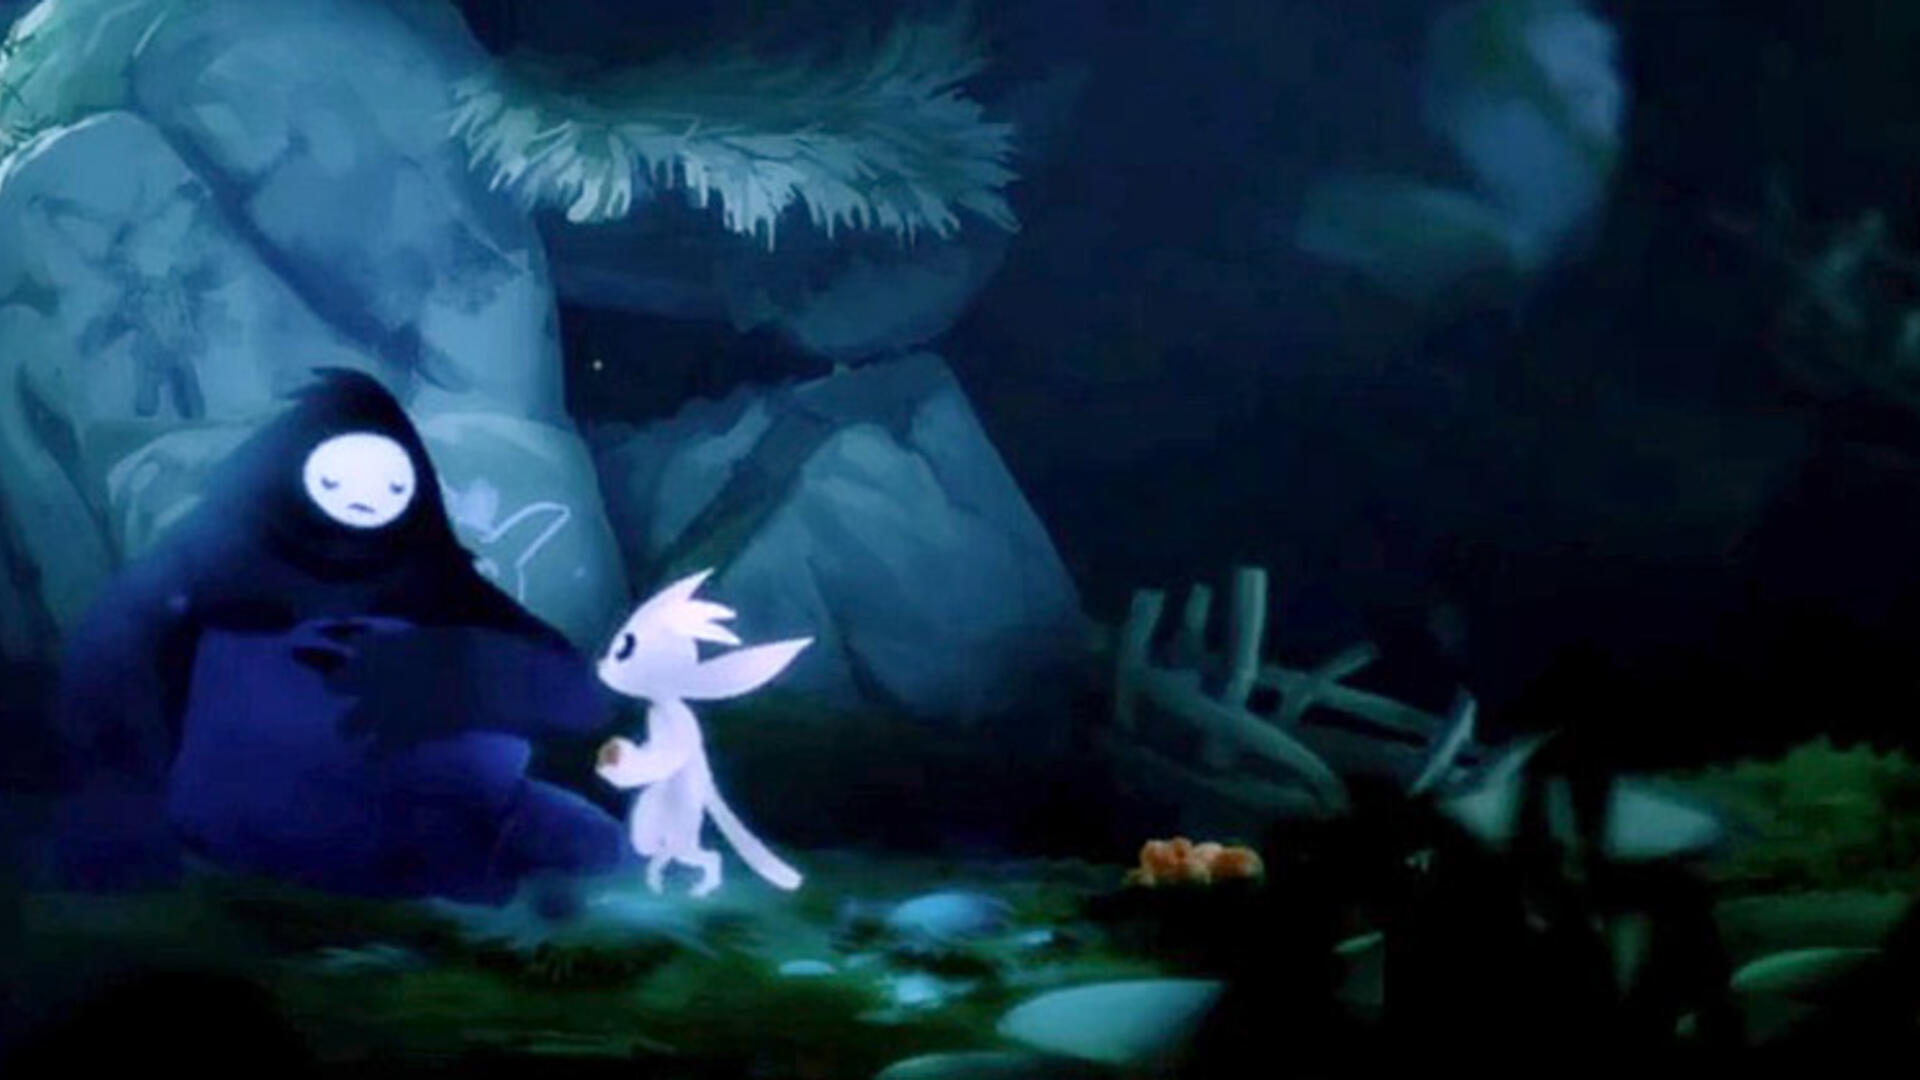 Ori and the Blind Forest: Putting 2D Games Back at the Cutting Edge